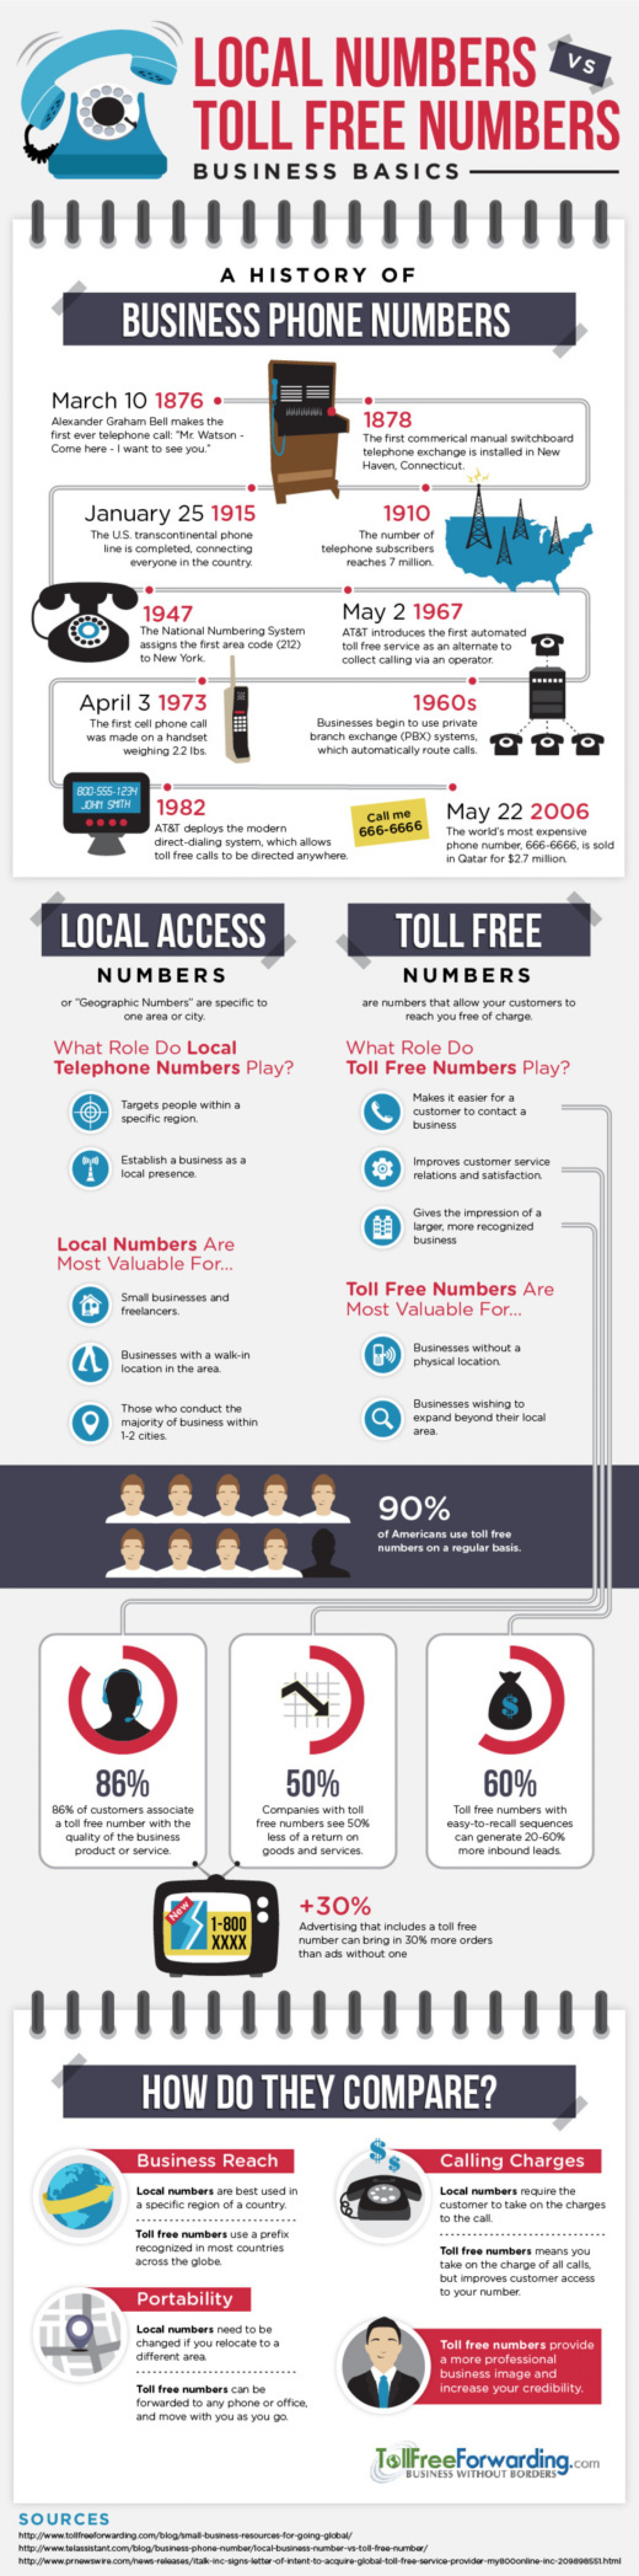 Local Numbers vs Toll Free Numbers: Business Basics Infographic